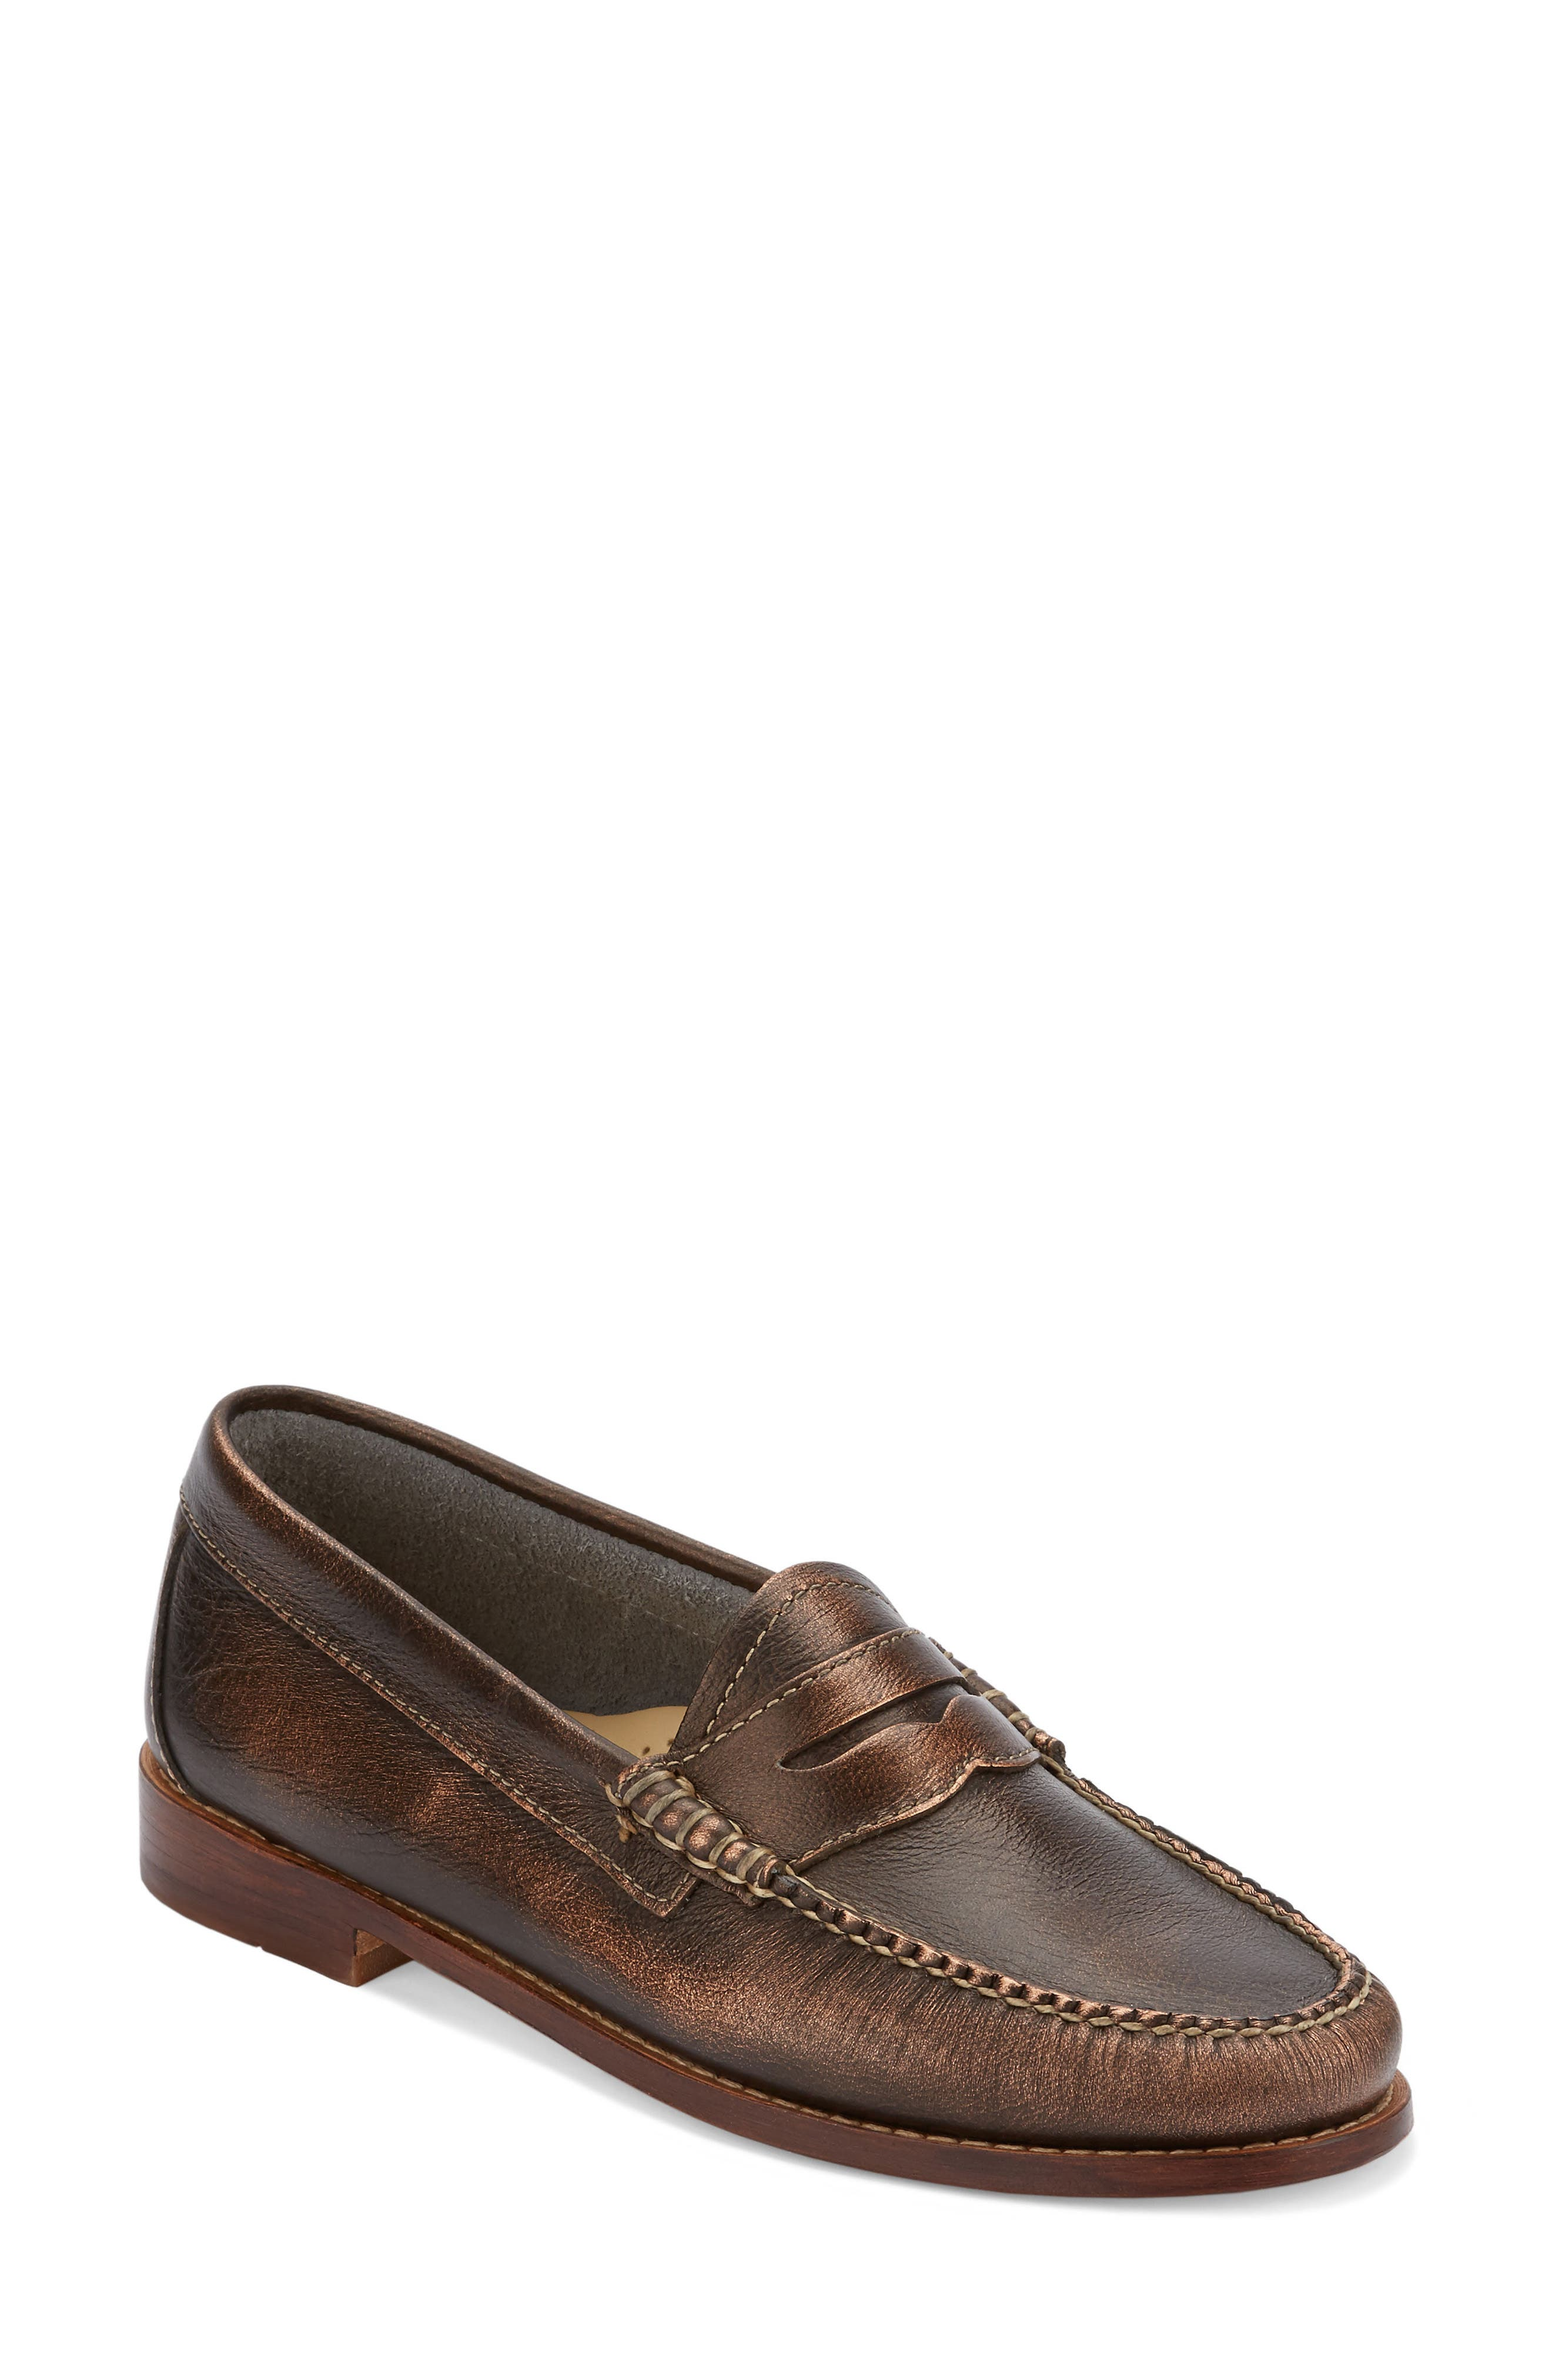 'Whitney' Loafer,                         Main,                         color, Copper/ Copper Leather